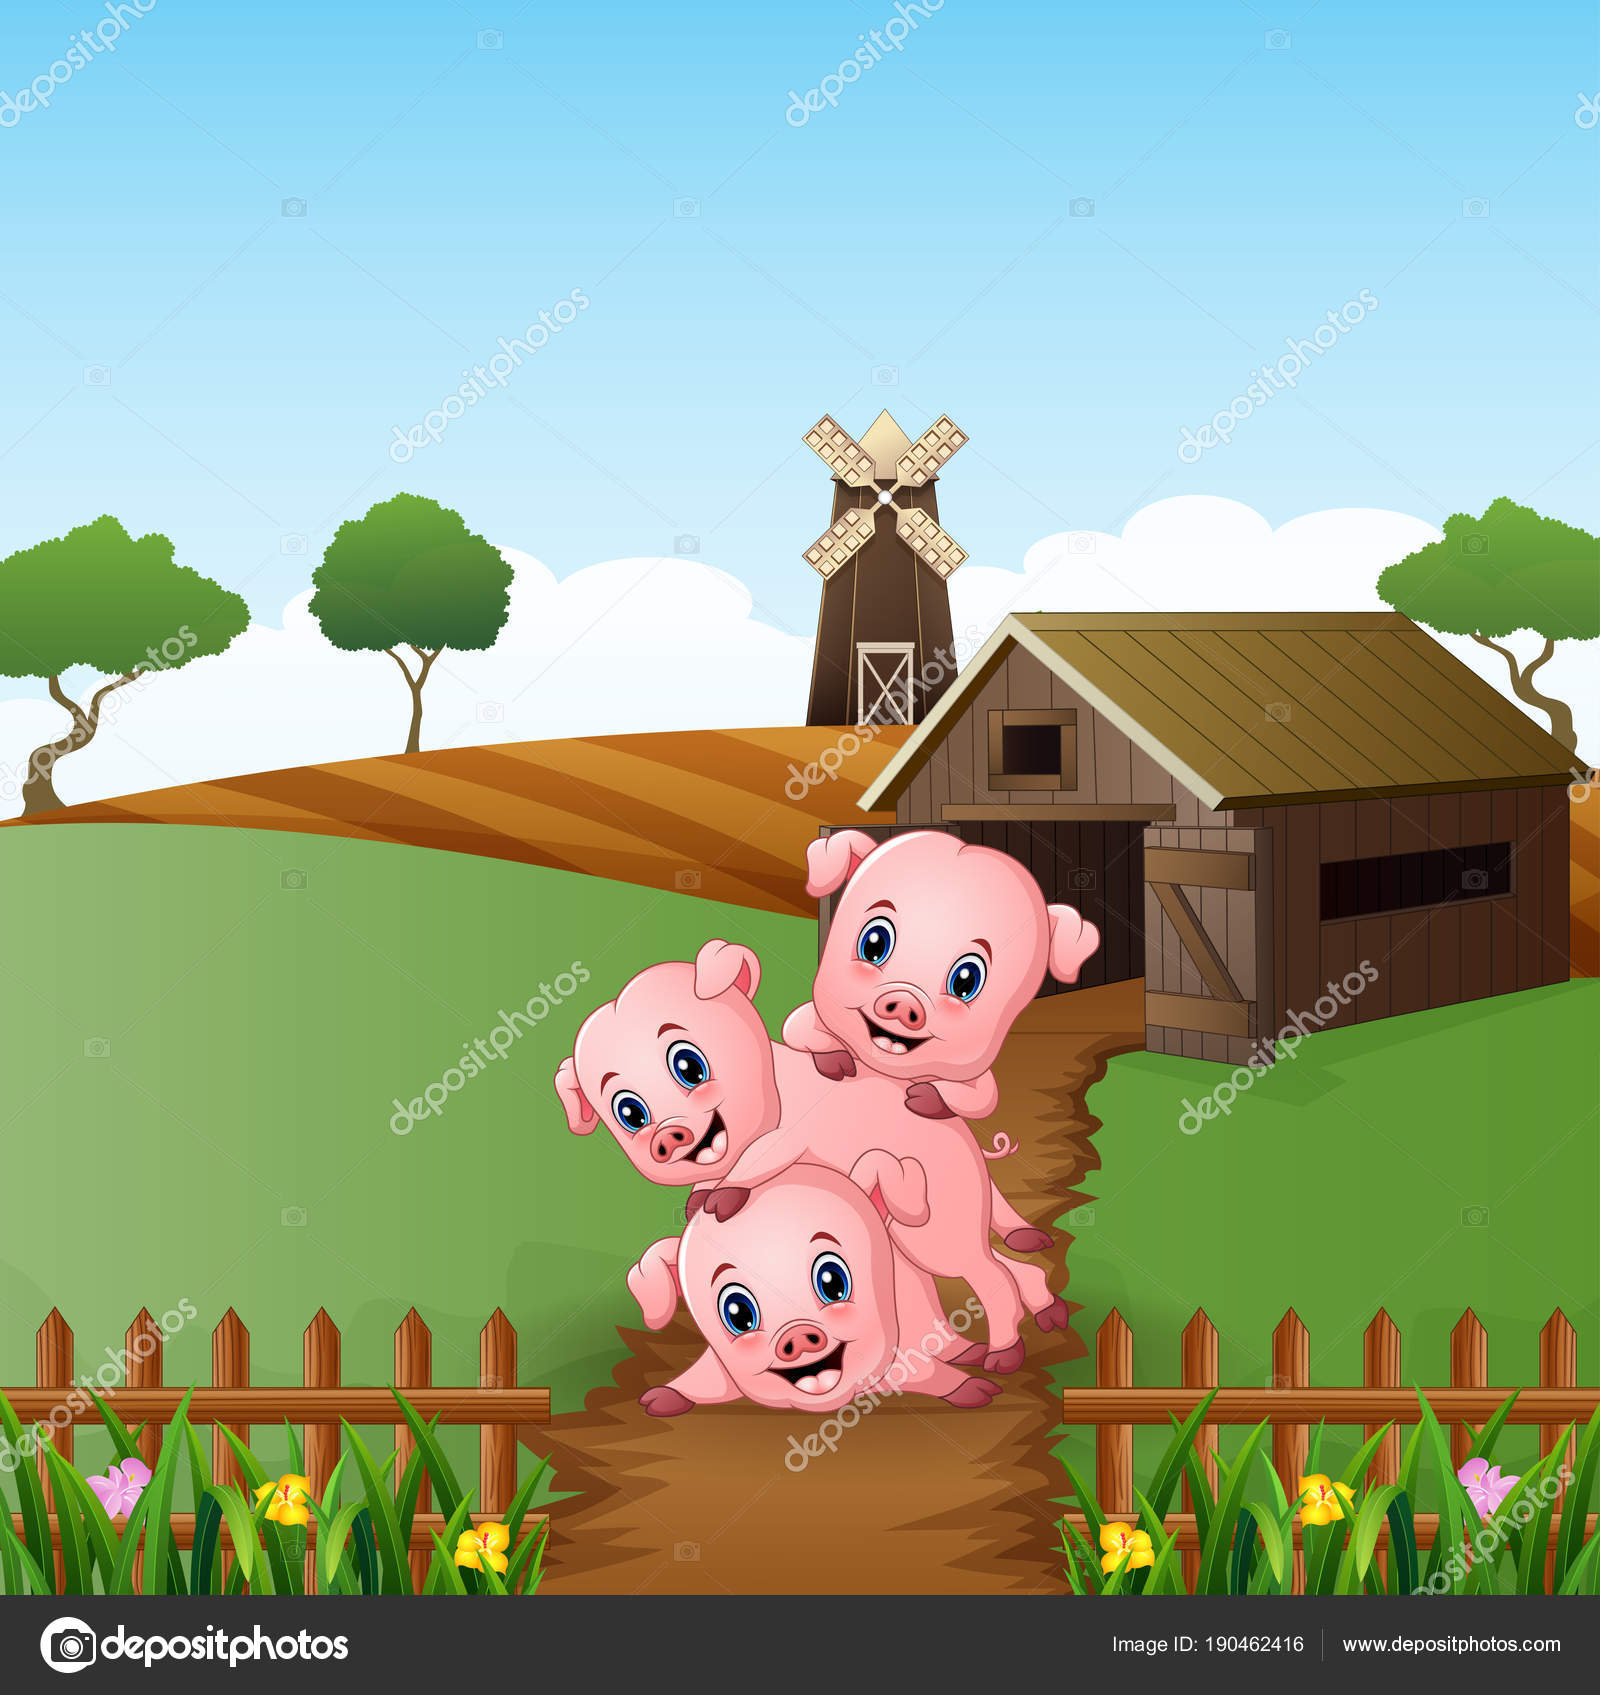 Vector Illustration Cartoon Three Little Pigs Playing Farm Background Stock